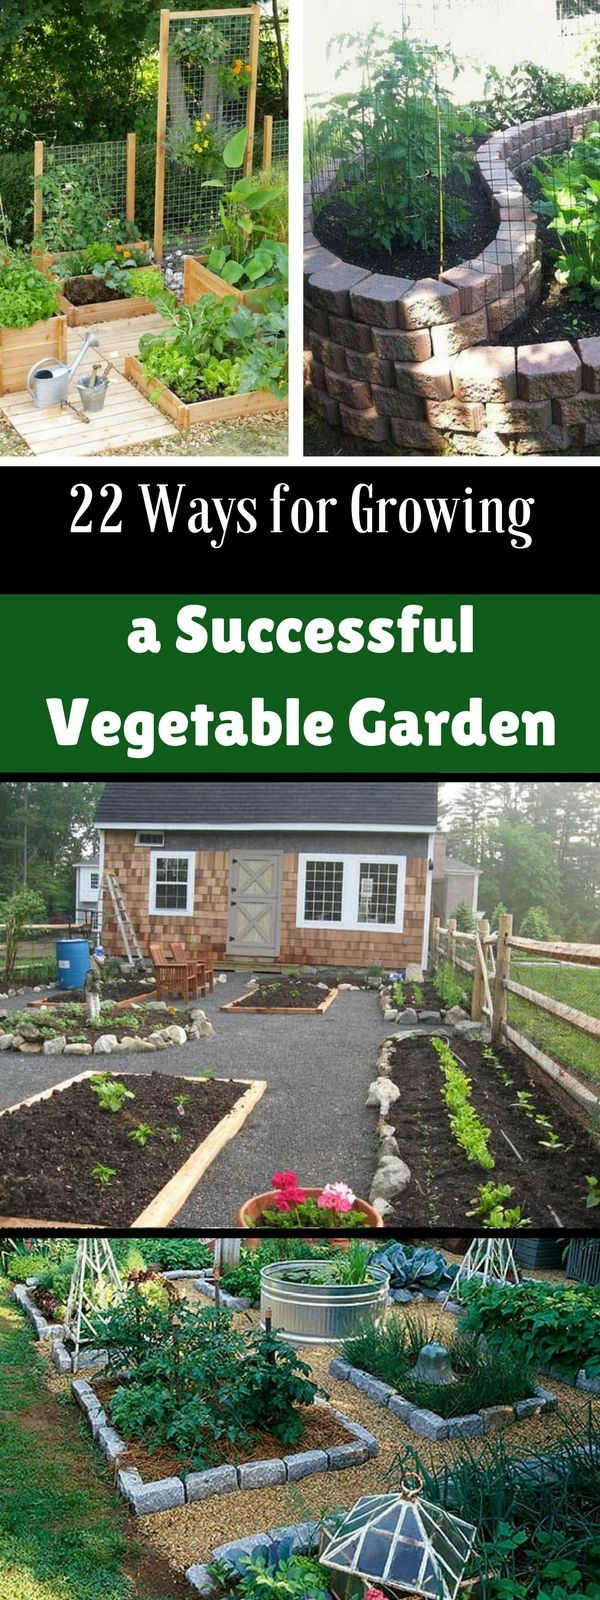 22 Ways For Growing A Successful Vegetable Garden Backyard Vegetable Gardens Organic Vegetable Garden Vertical Vegetable Gardens Backyard vegetable garden how to